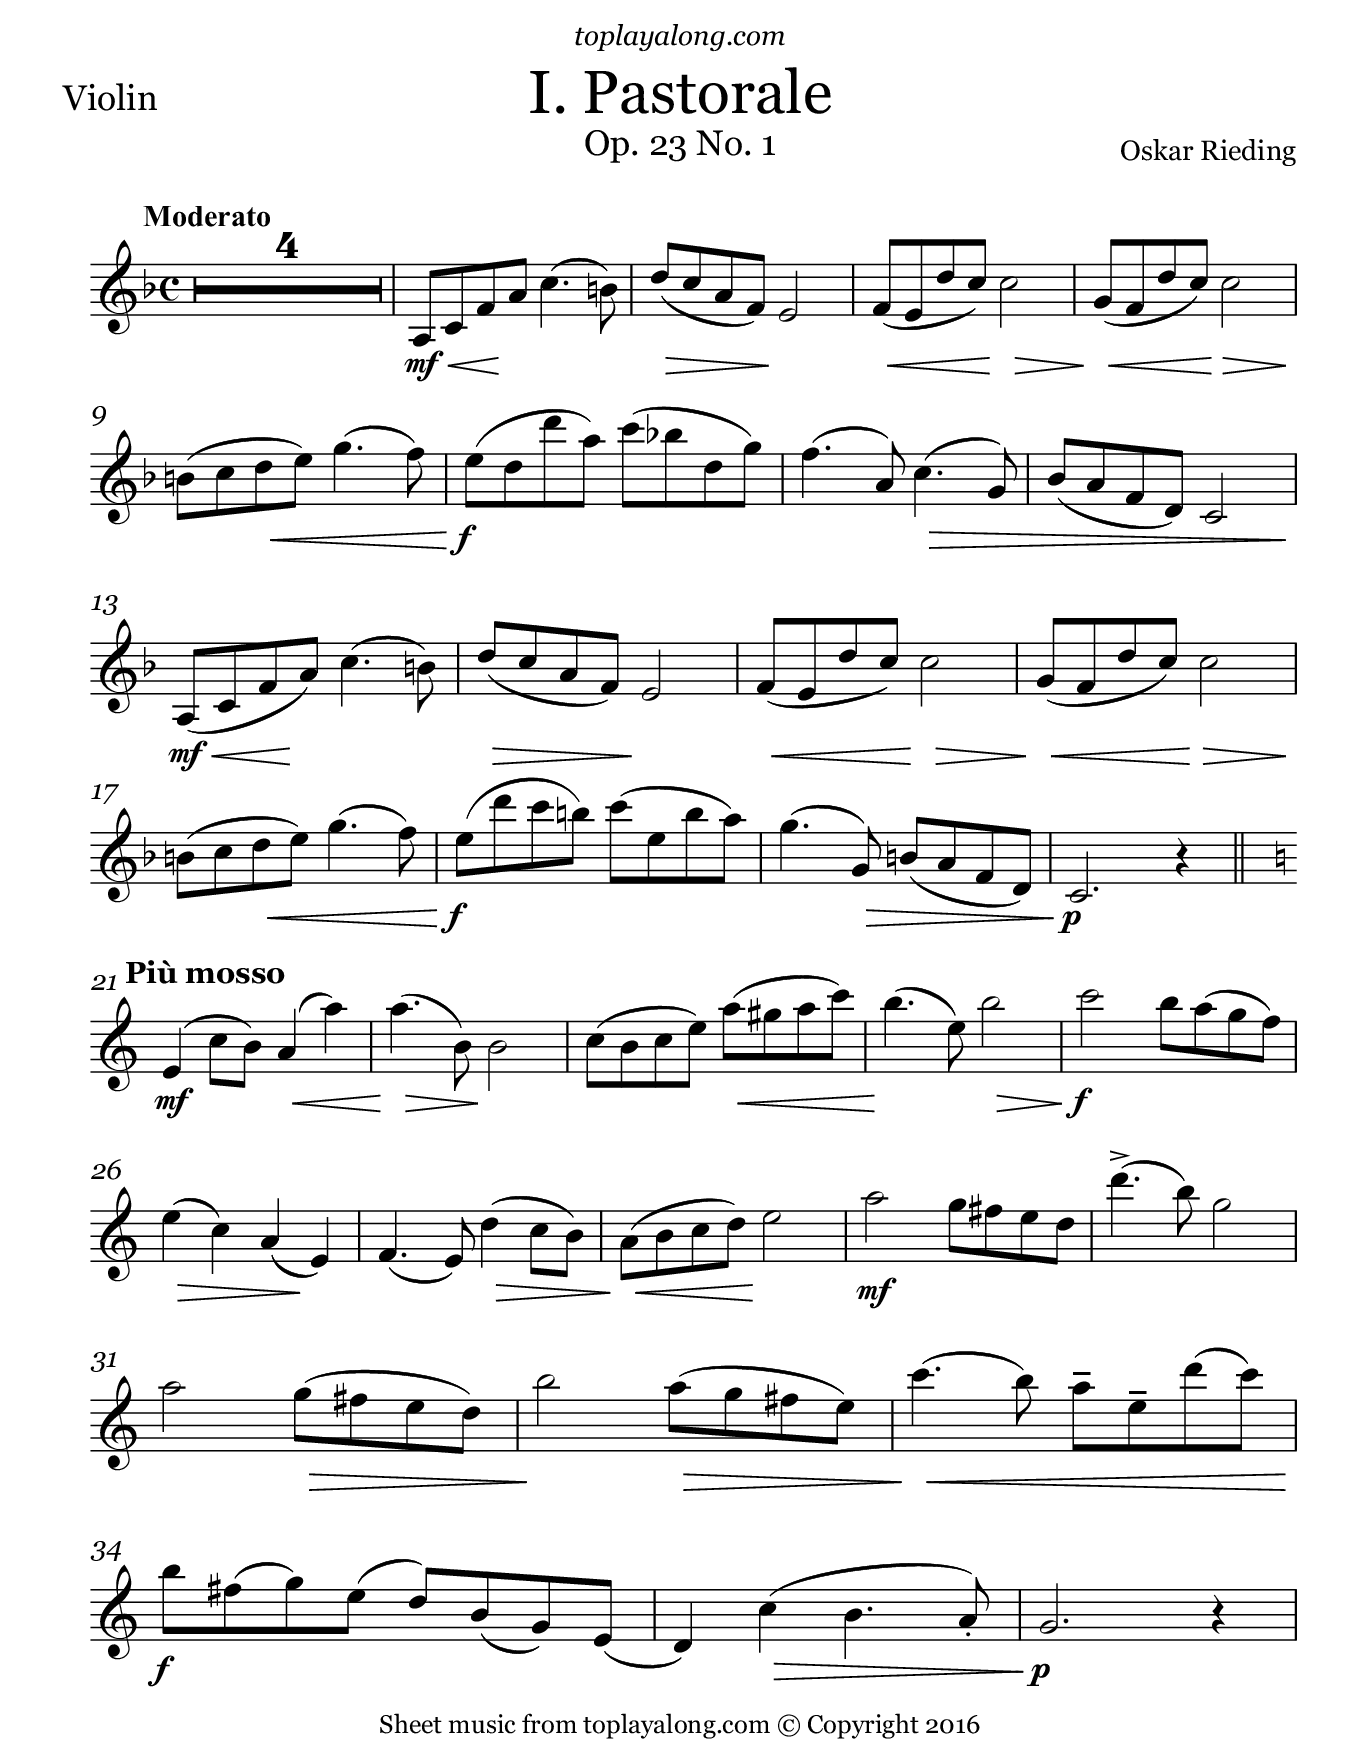 Pastorale Op. 23 No. 1 by Rieding. Sheet music for Violin, page 1.